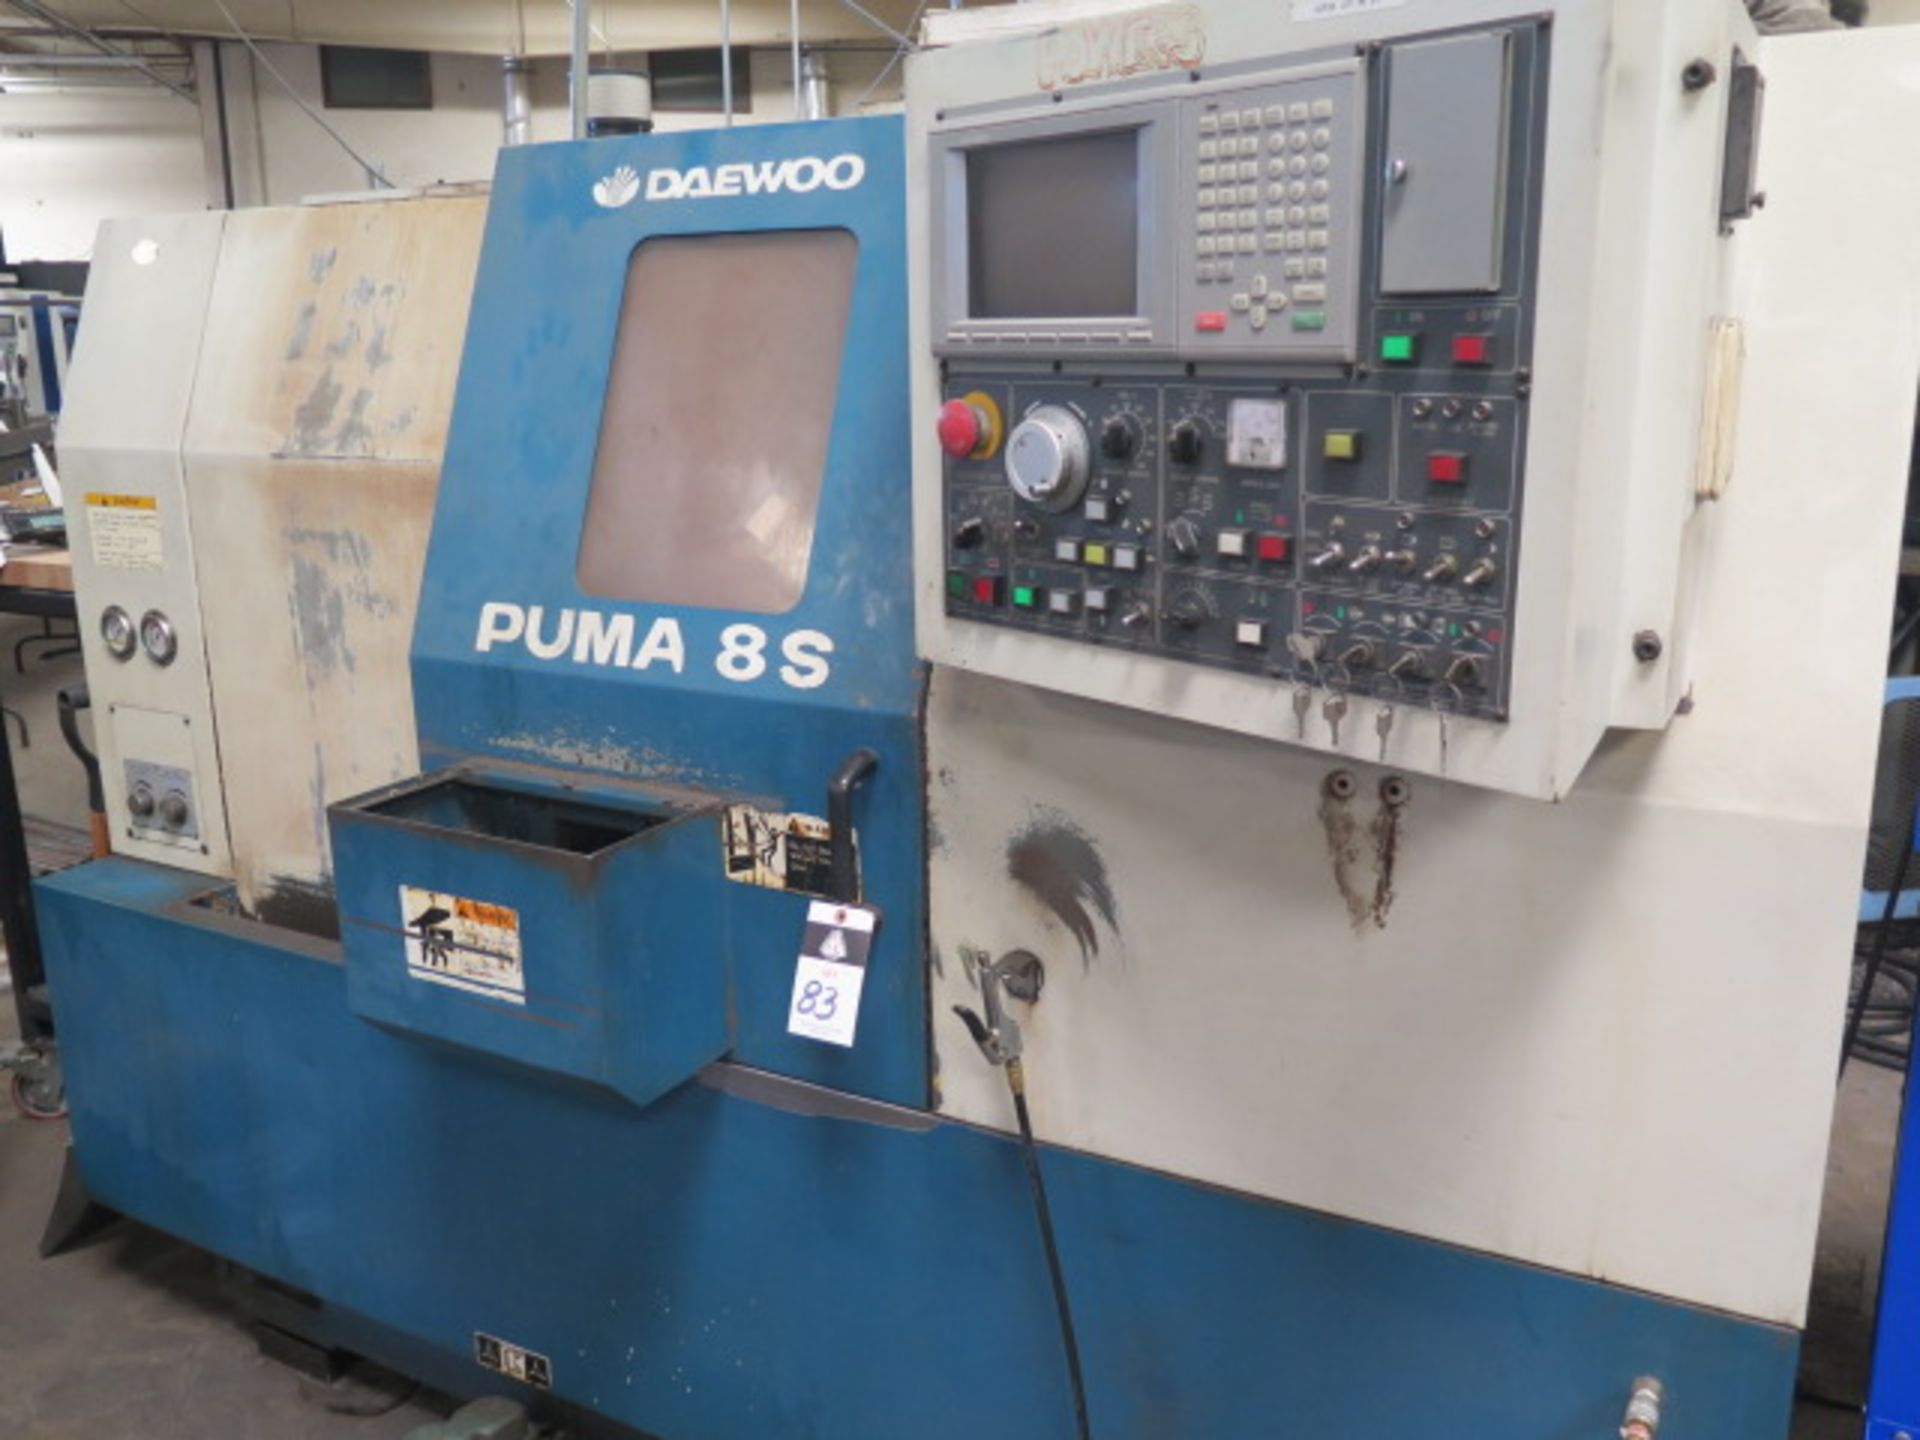 1996 Daewoo PUMA 8S CNC Turning Center s/n PM8S0500 w/ Mits Controls, Tool Presetter, SOLD AS IS - Image 2 of 14